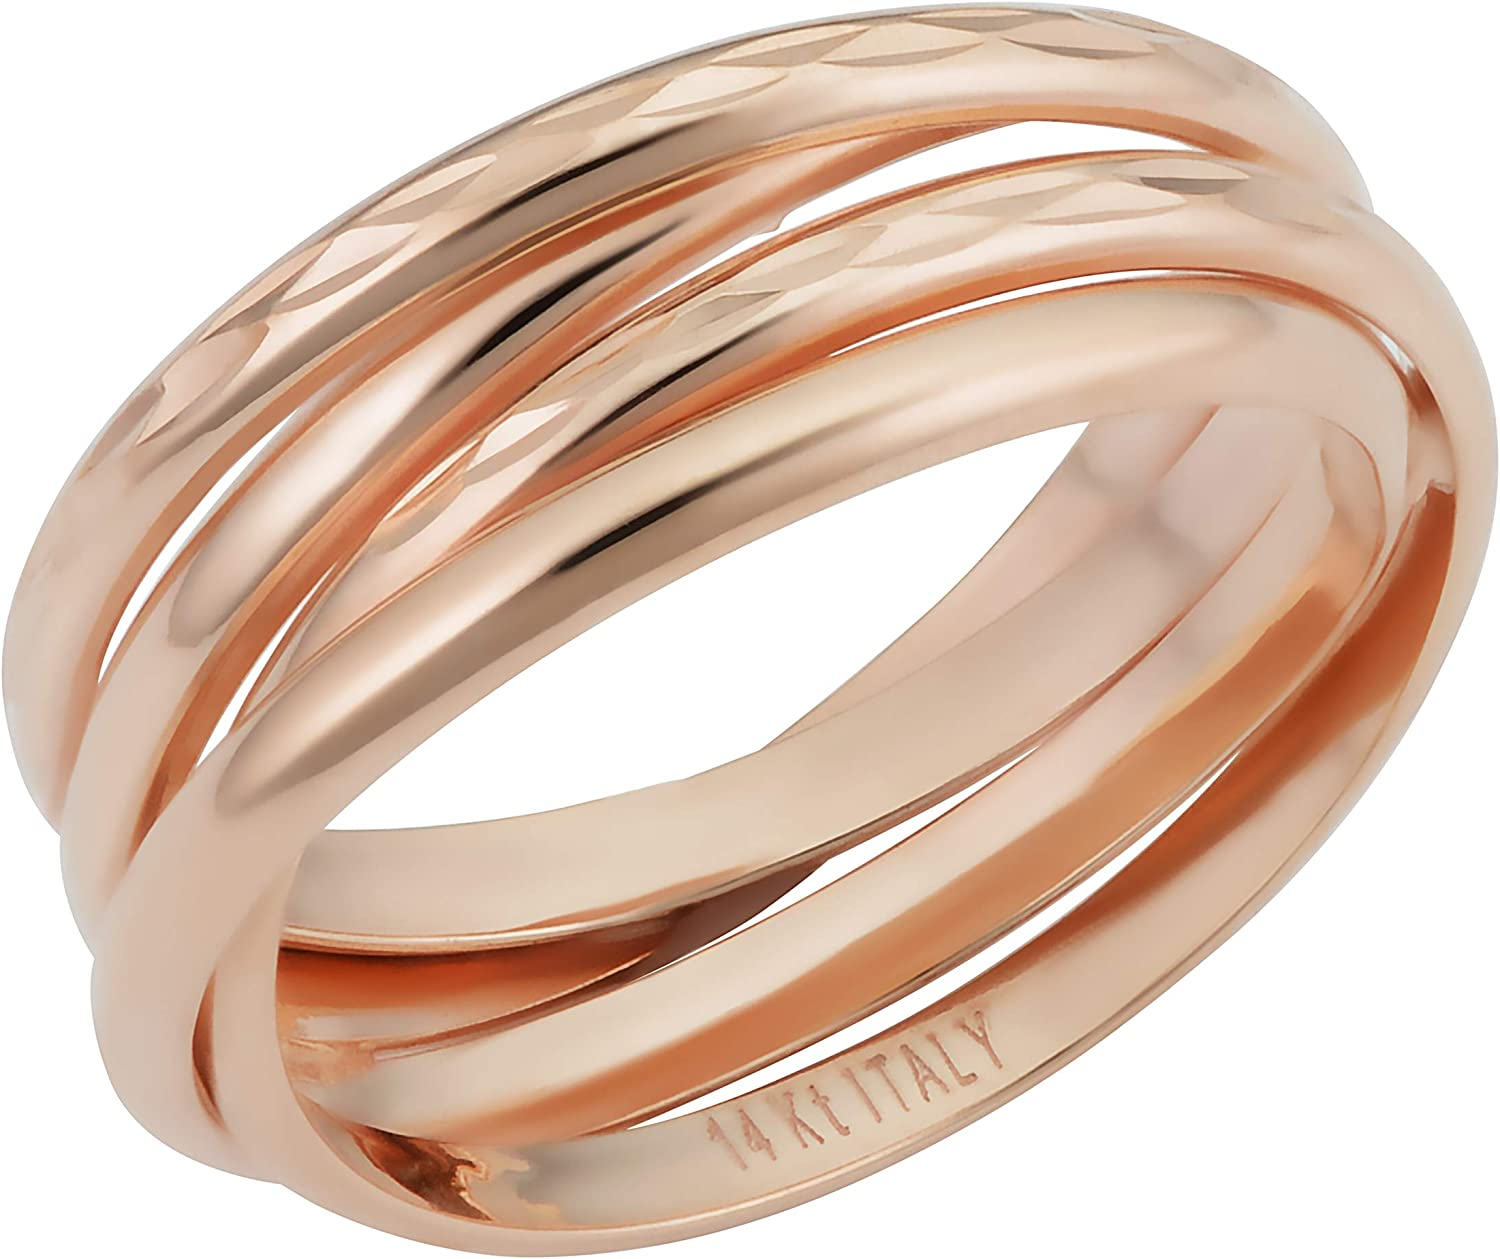 Size 7.5 Gold Tone Copper Wire Ring